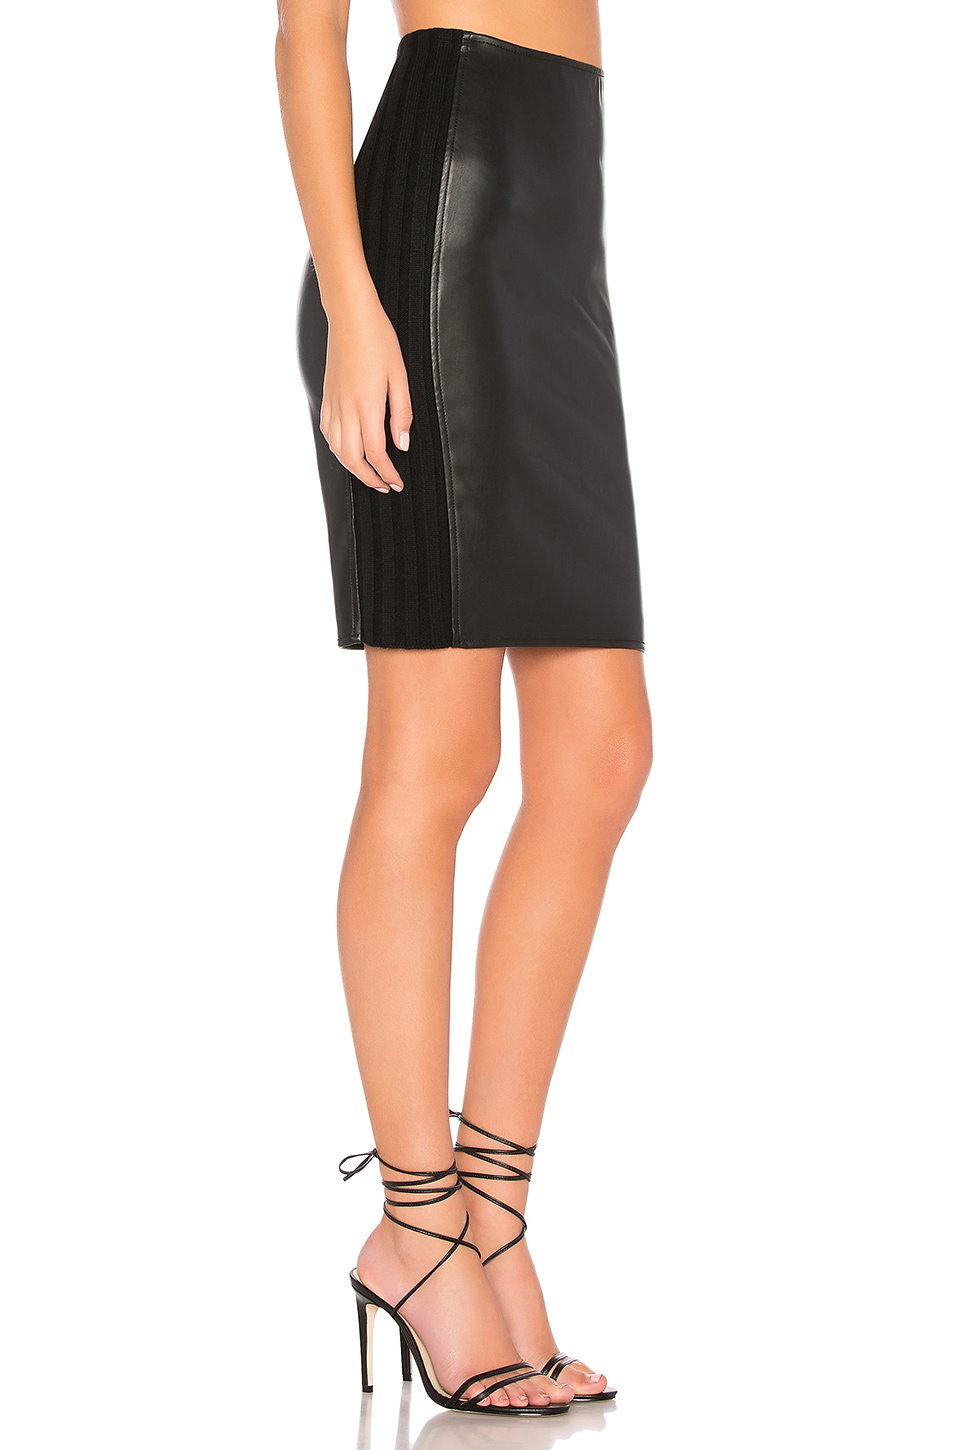 051b03b847 Buy Original Bailey 44 Tolstoy Eco-Leather Pencil Skirt at Indonesia ...